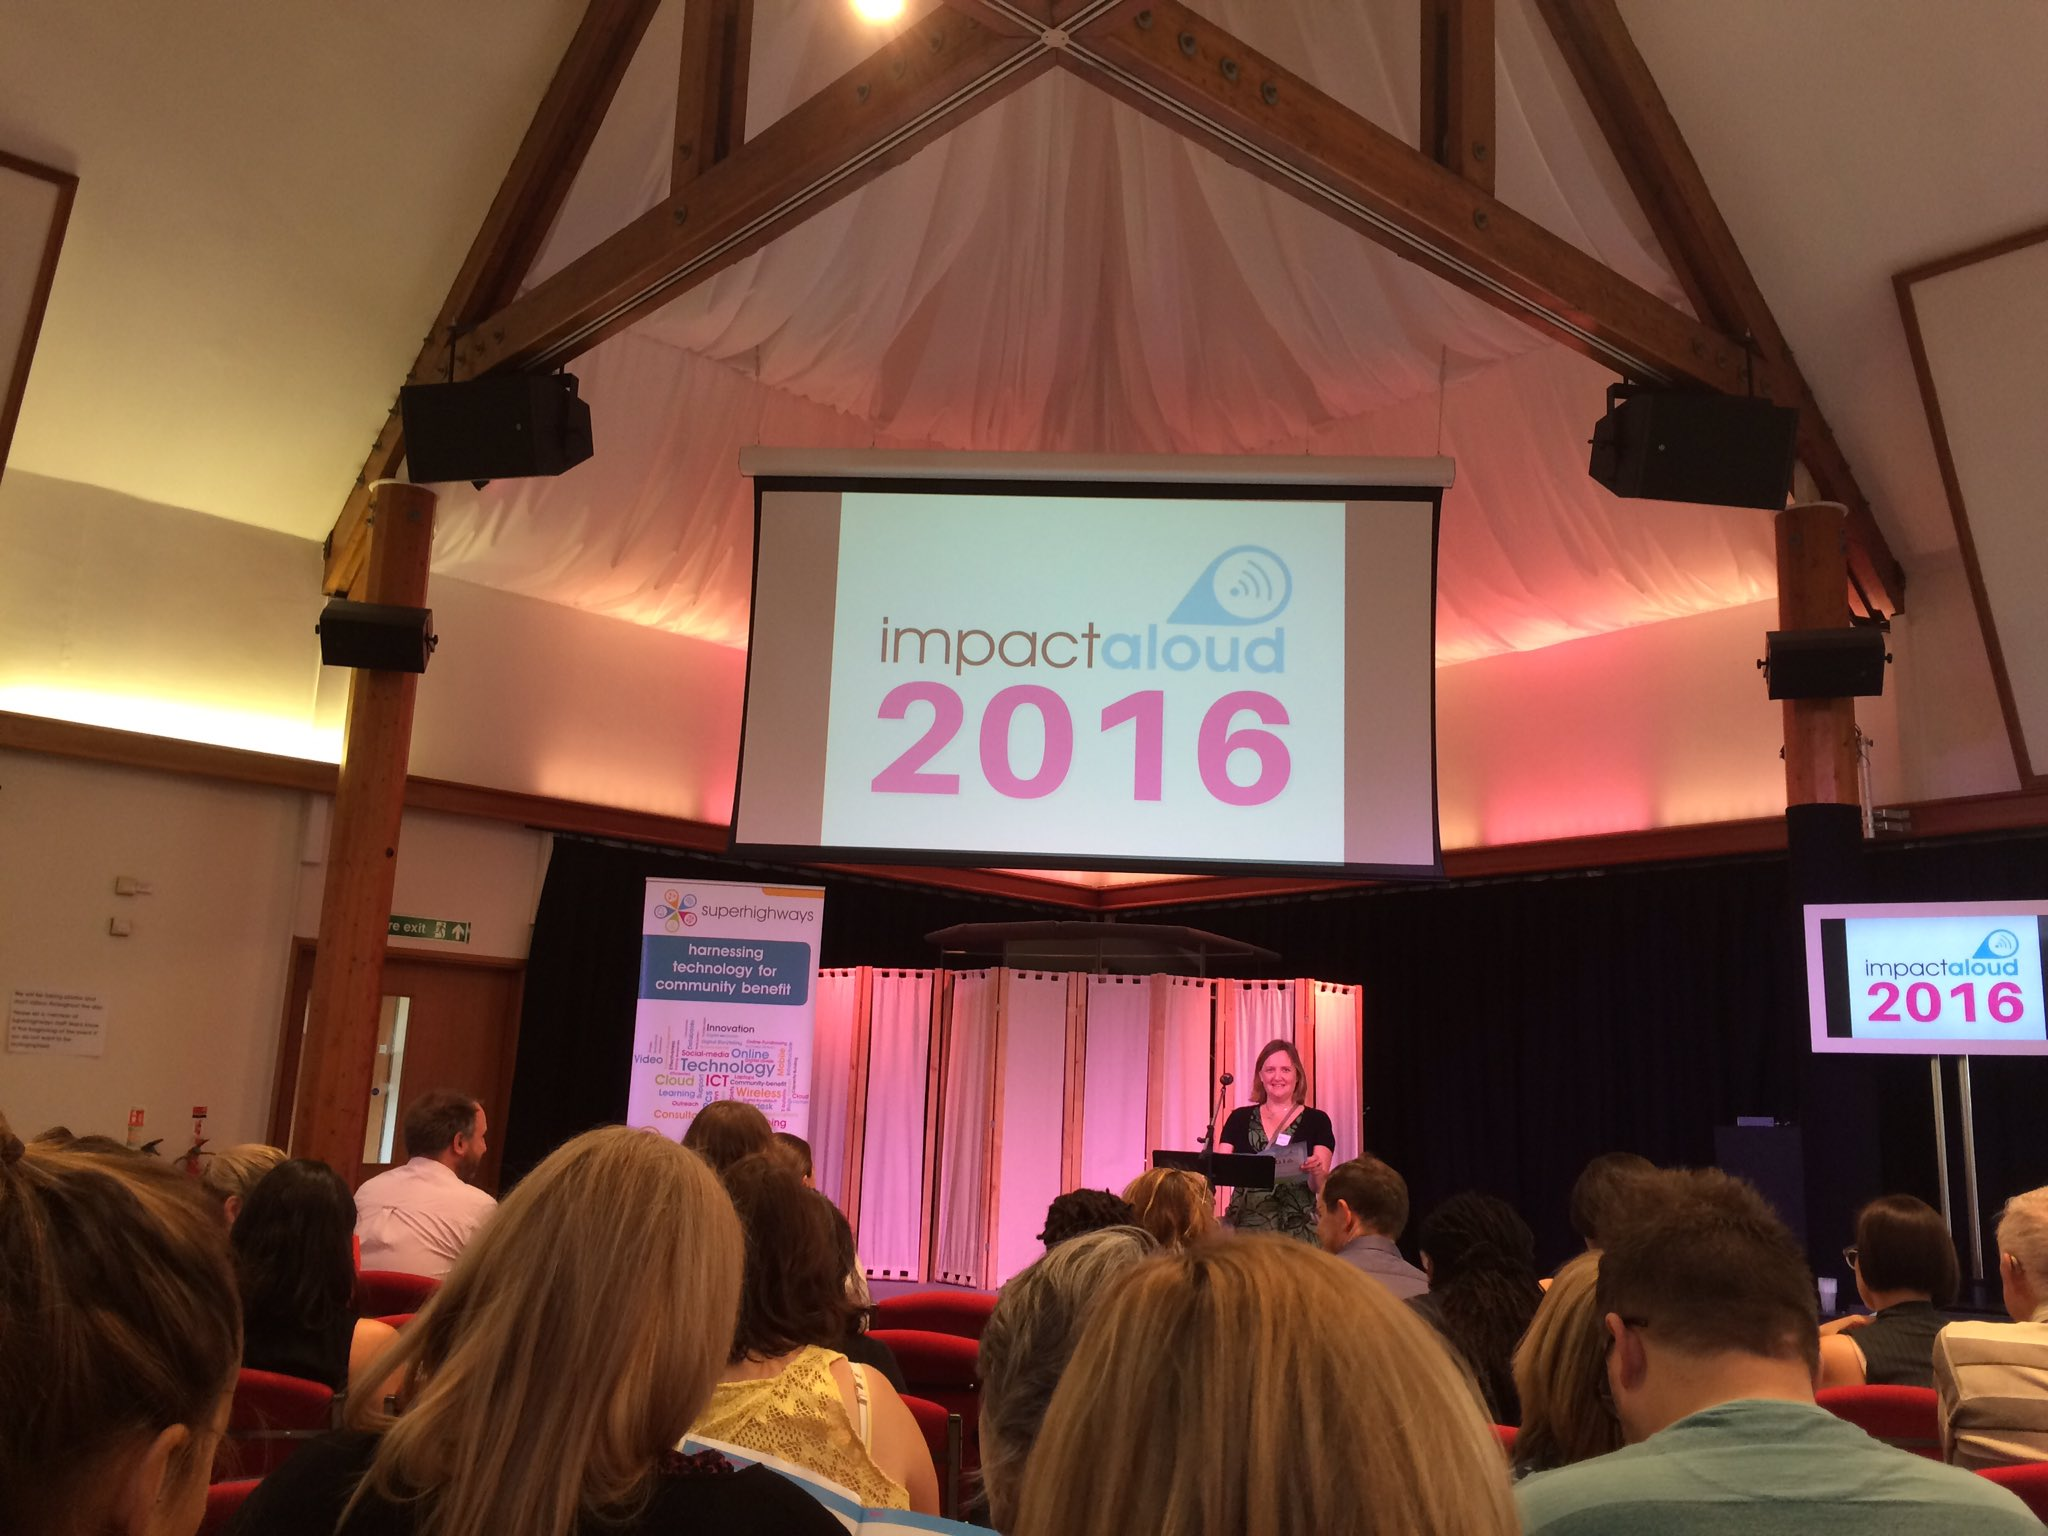 Excited to be welcomed to #impactaloud @SuperhighwaysUK https://t.co/LzEB7P8NTe